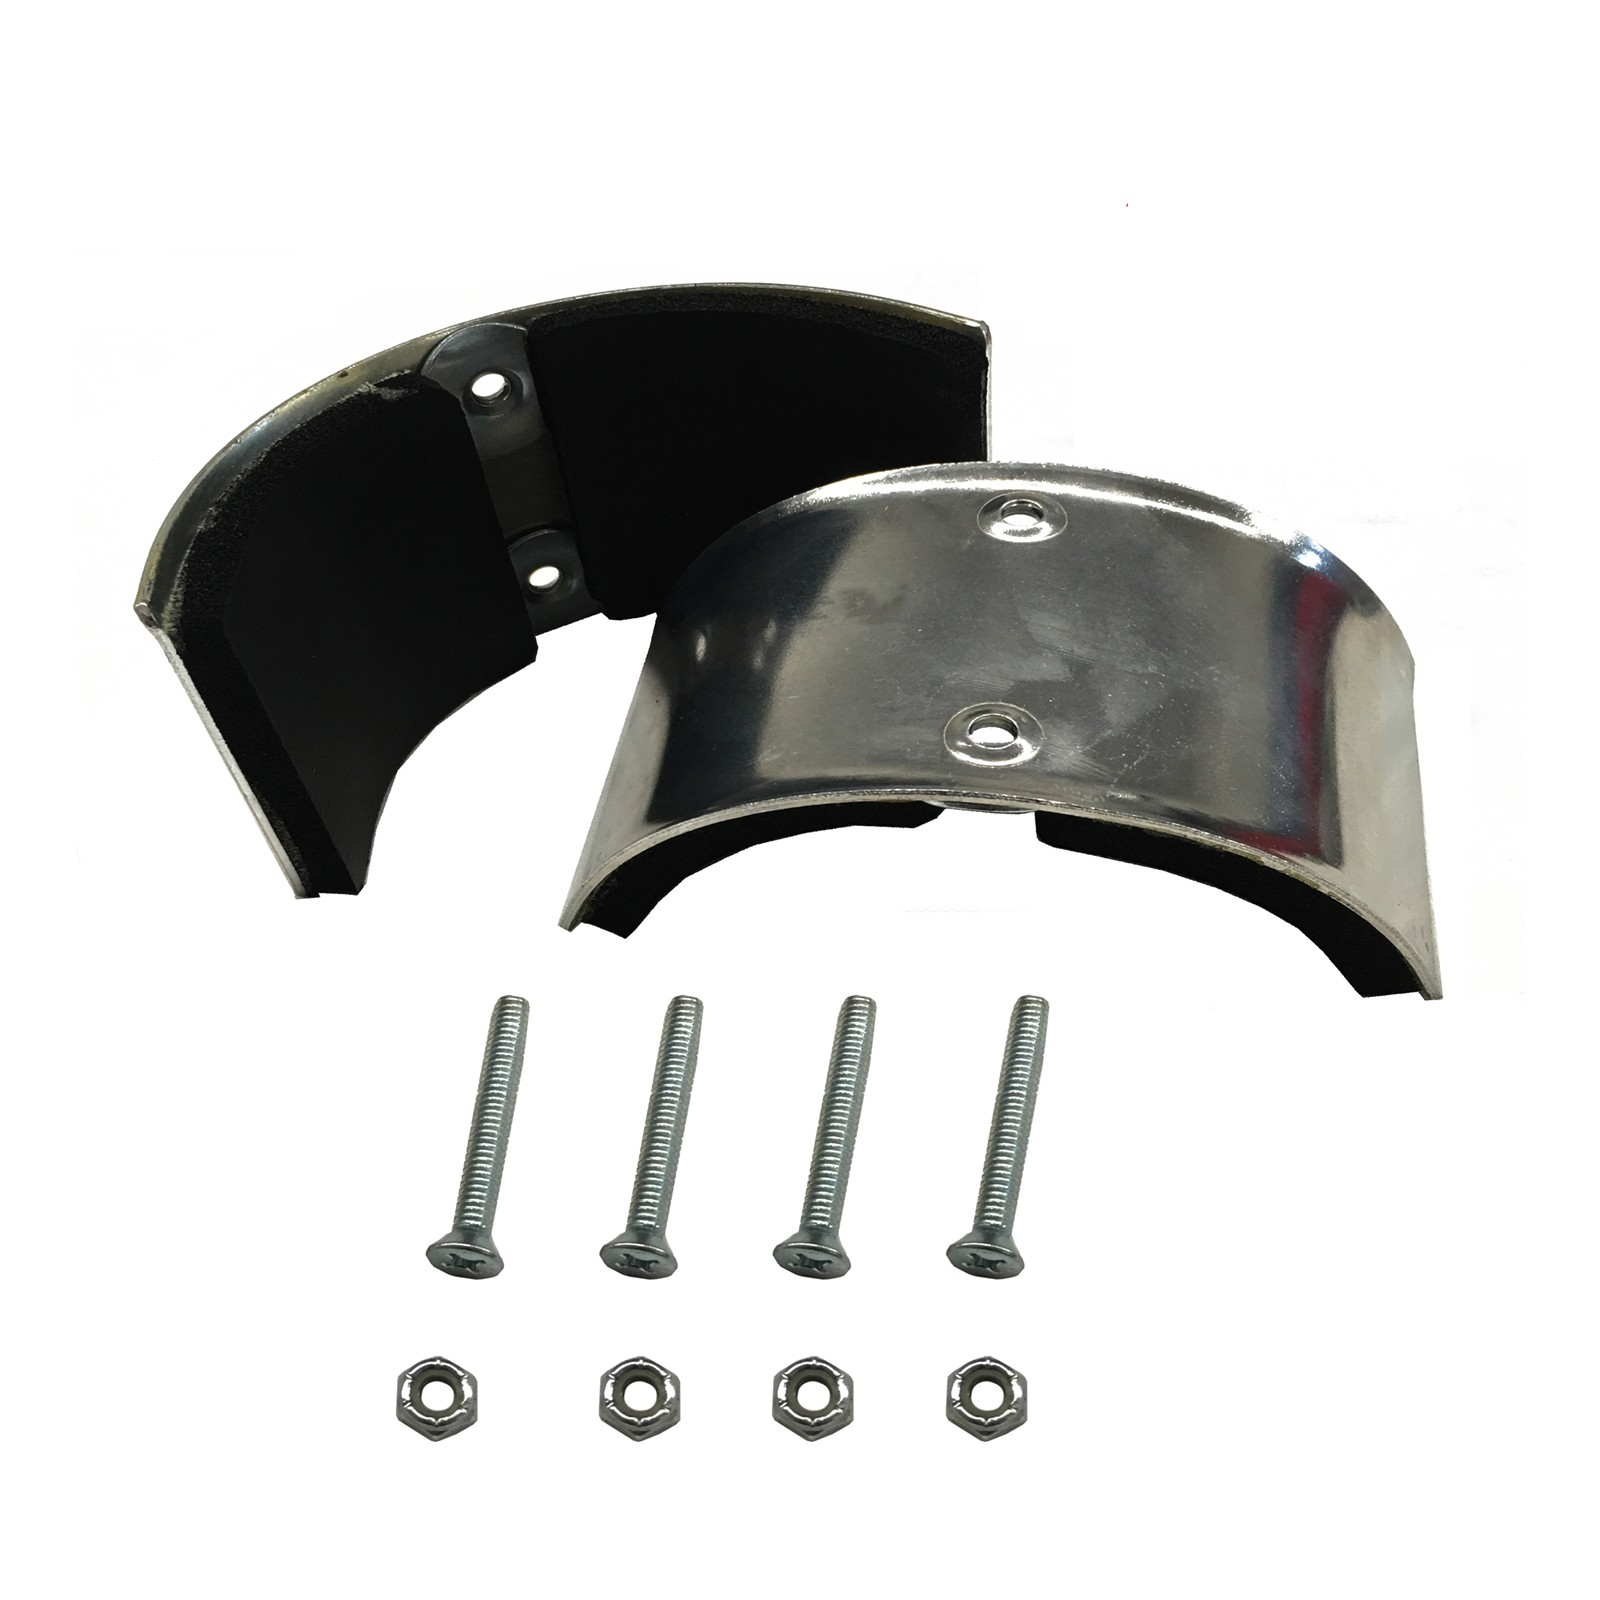 Dura-Stilt Parts Kits